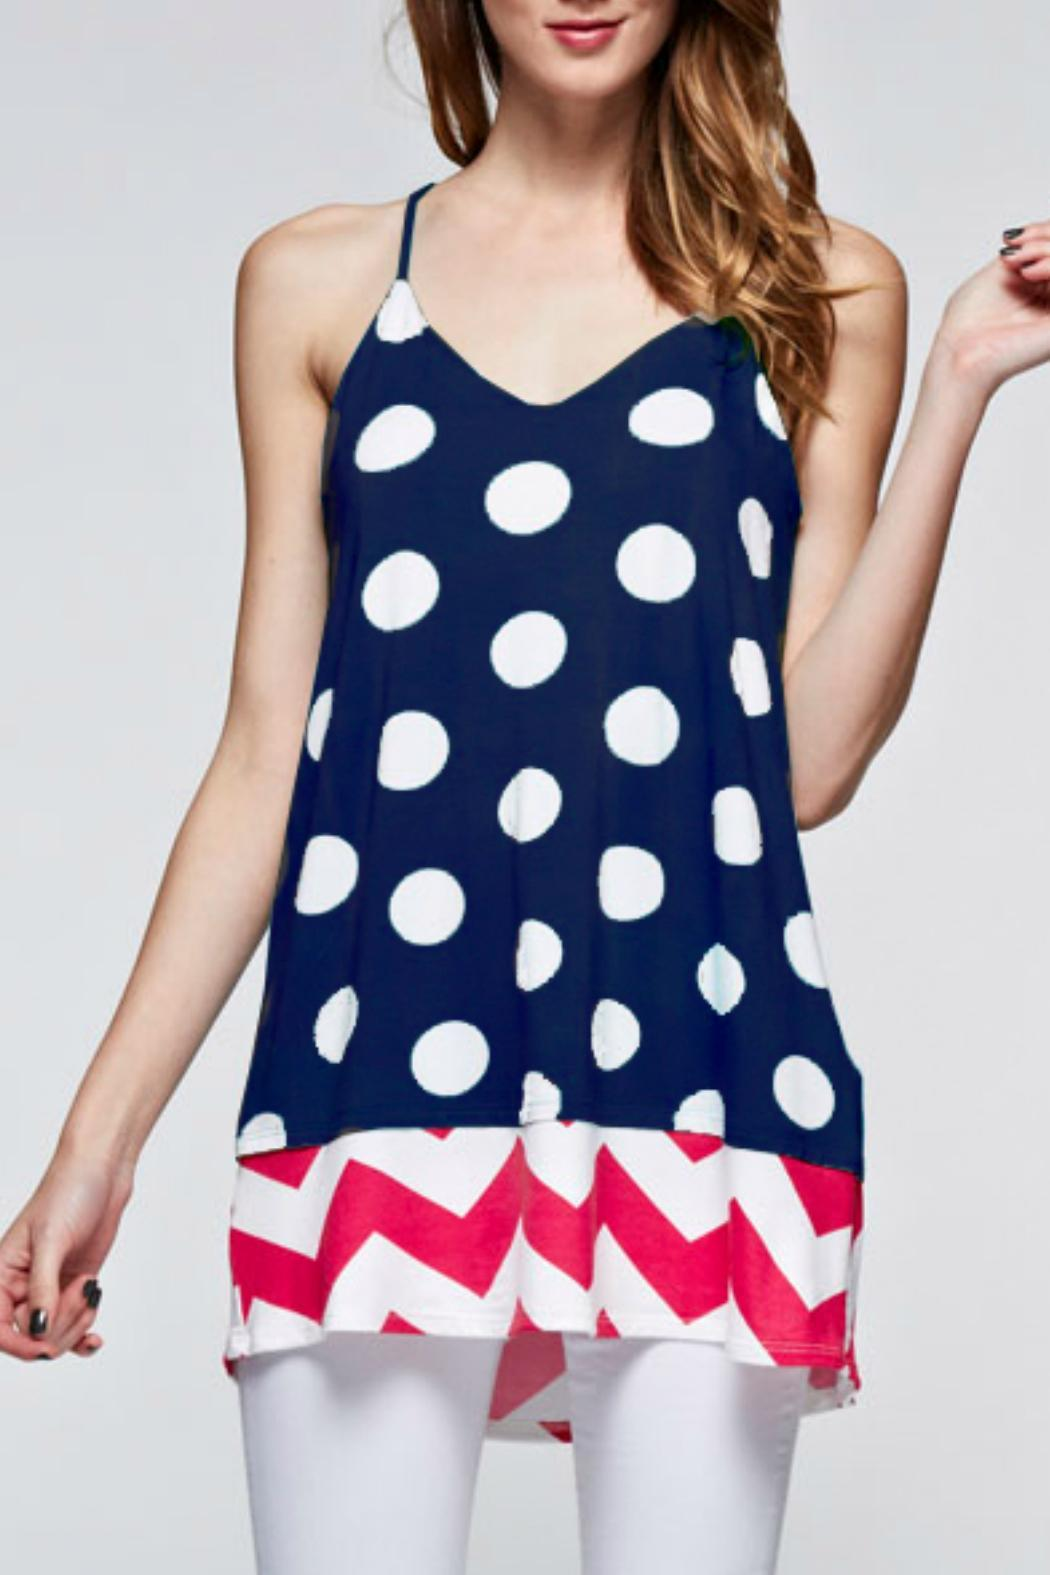 12pm by mon ami polka dot tank from maryland by swank shoptiques